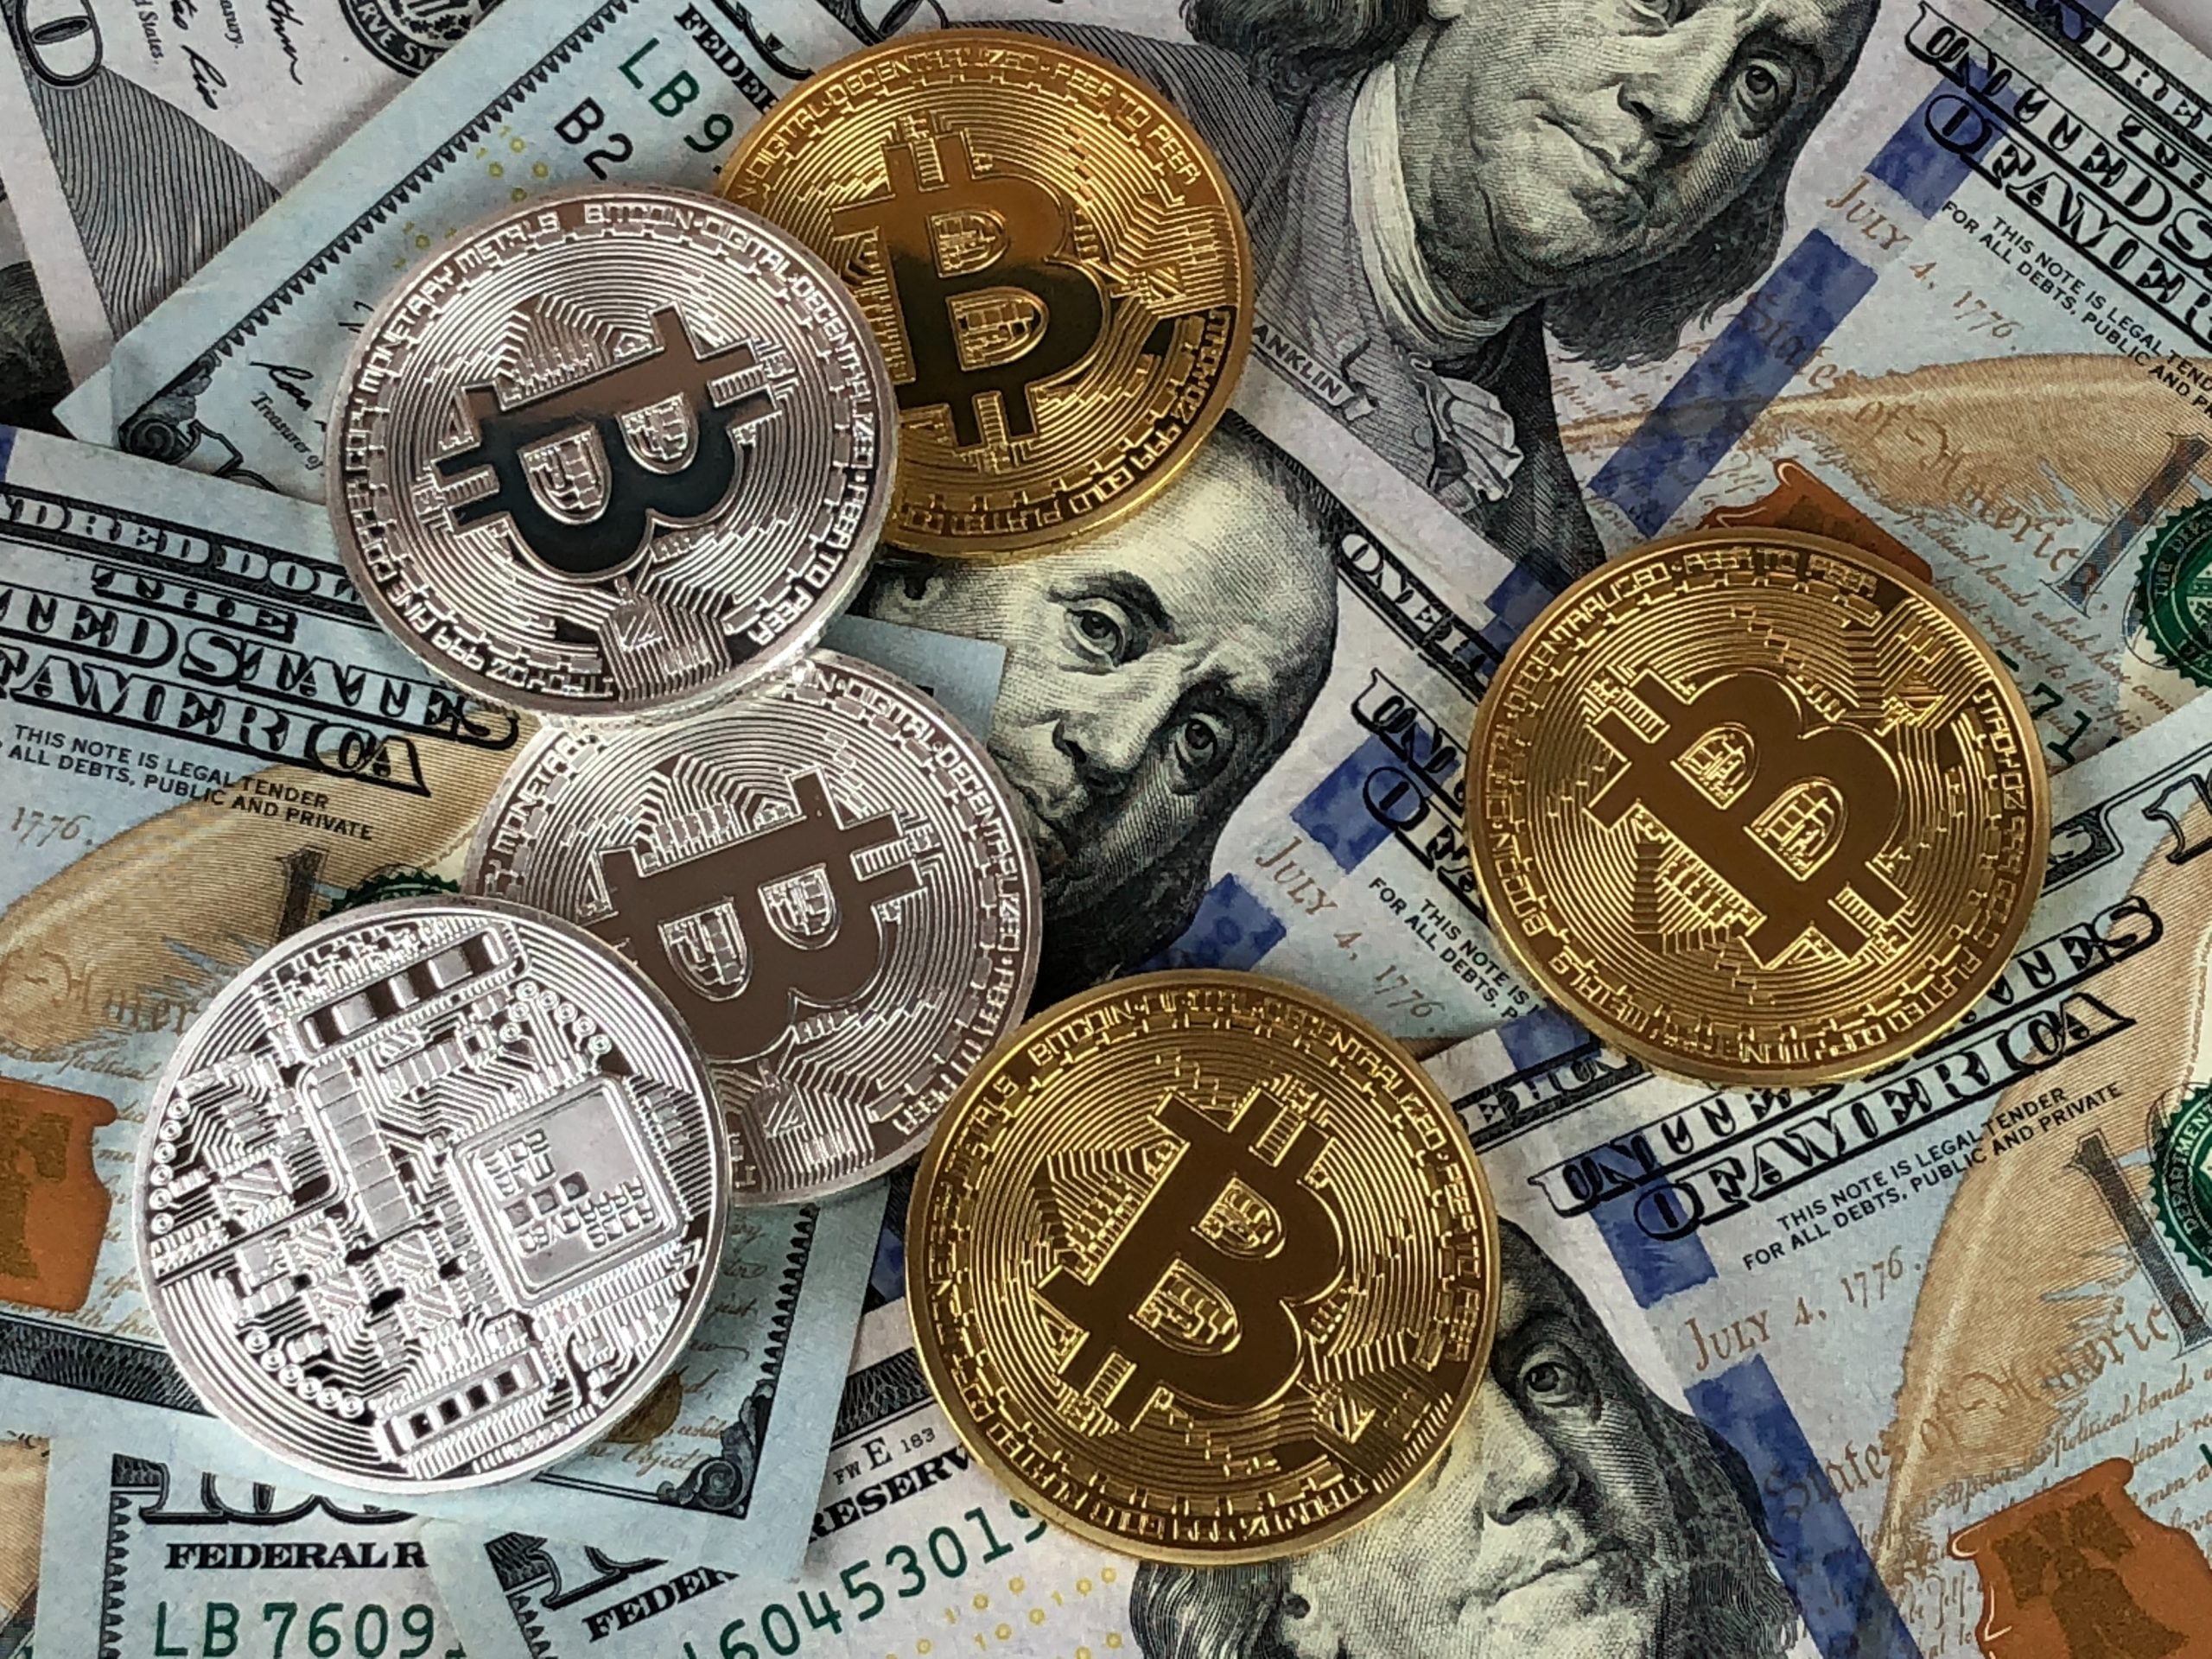 various-cryptocurrency-coins-laying-on-top-of-cash